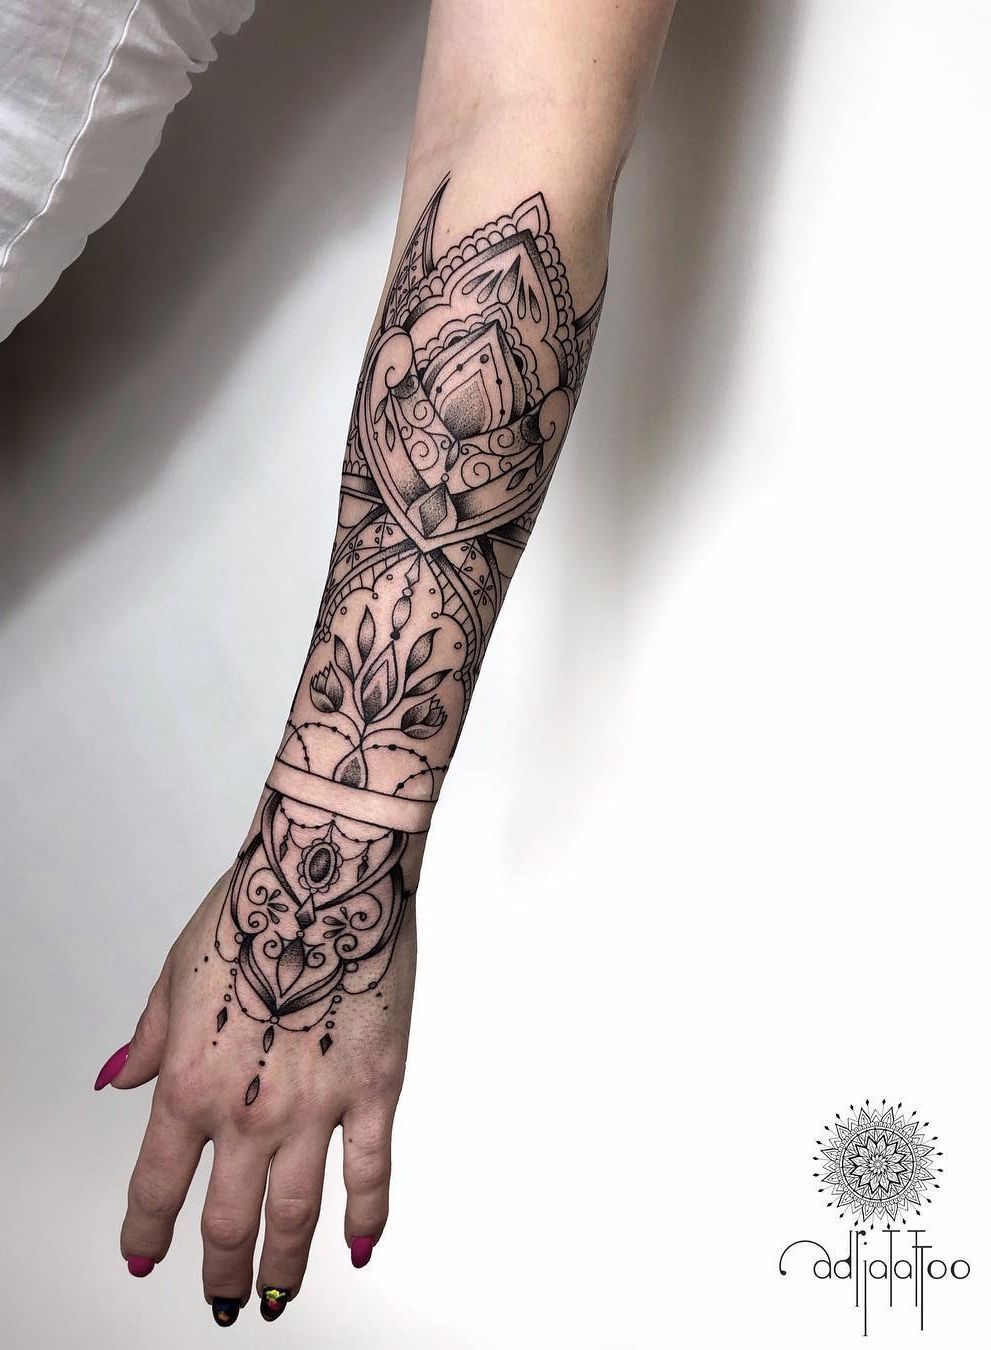 Exquisite Ornamental Tattoos By Adrianna Sak Kickass Things Mandala Hand Tattoos Tribal Hand Tattoos Mandala Tattoo Sleeve Women